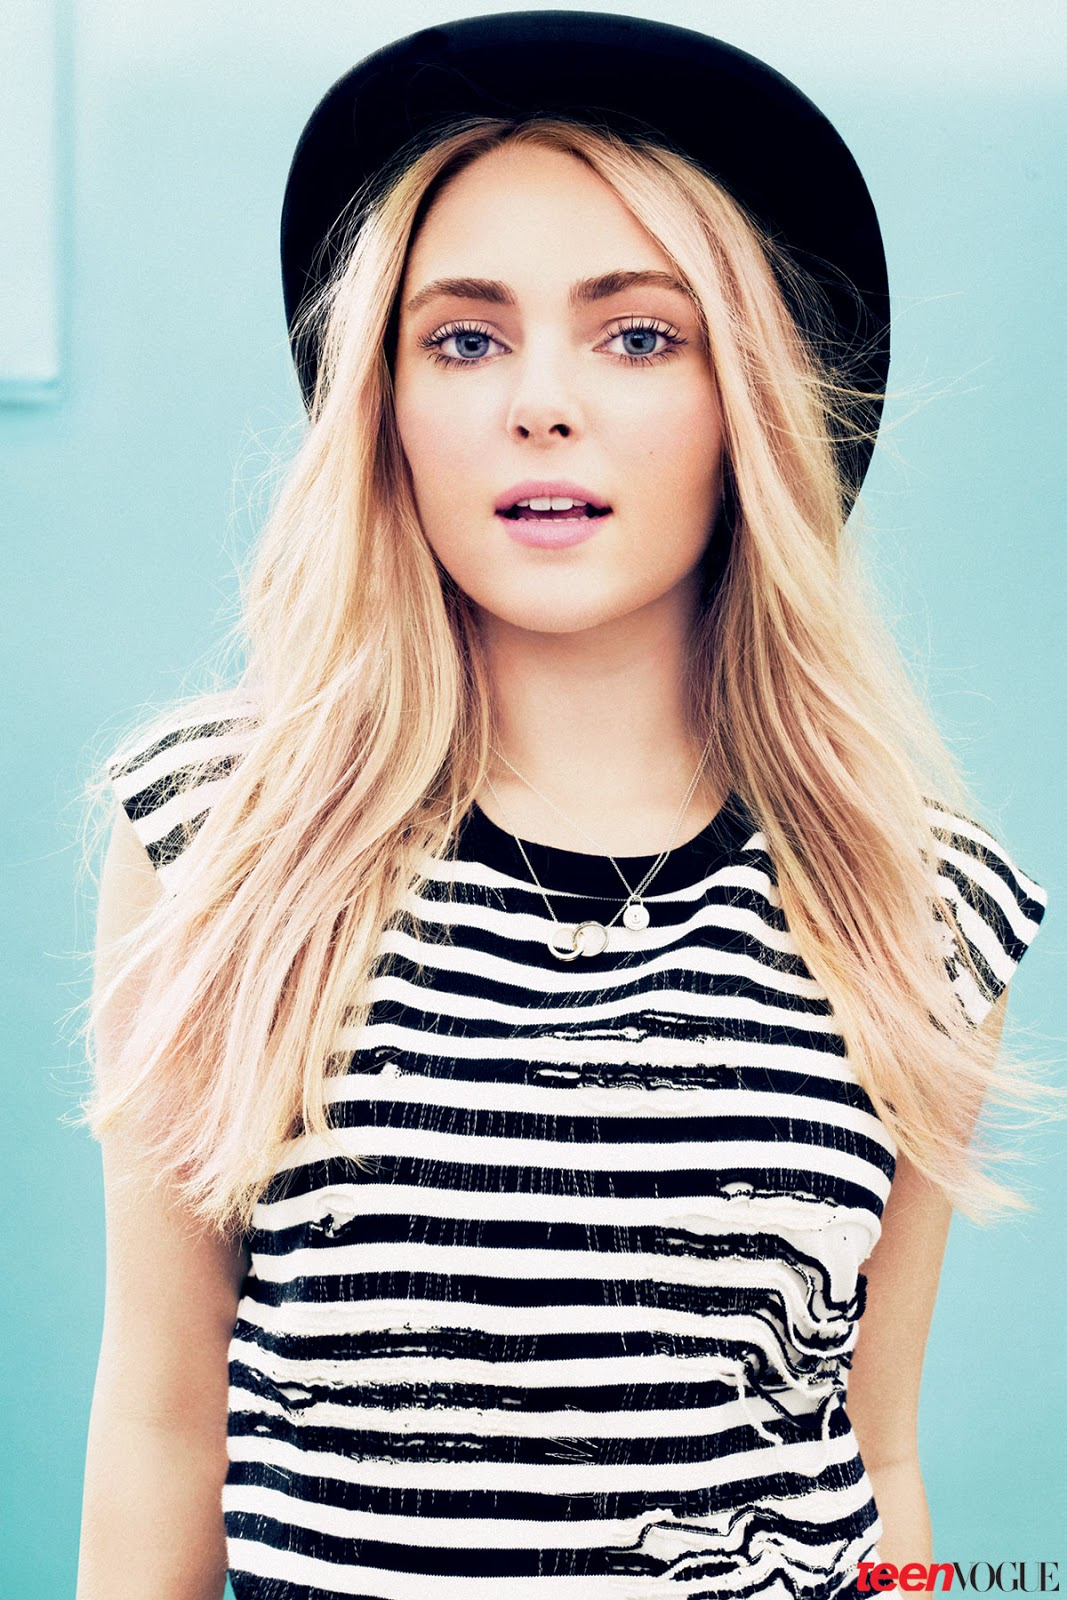 All About Celebrity: AnnaSophia Robb Height, Weight And